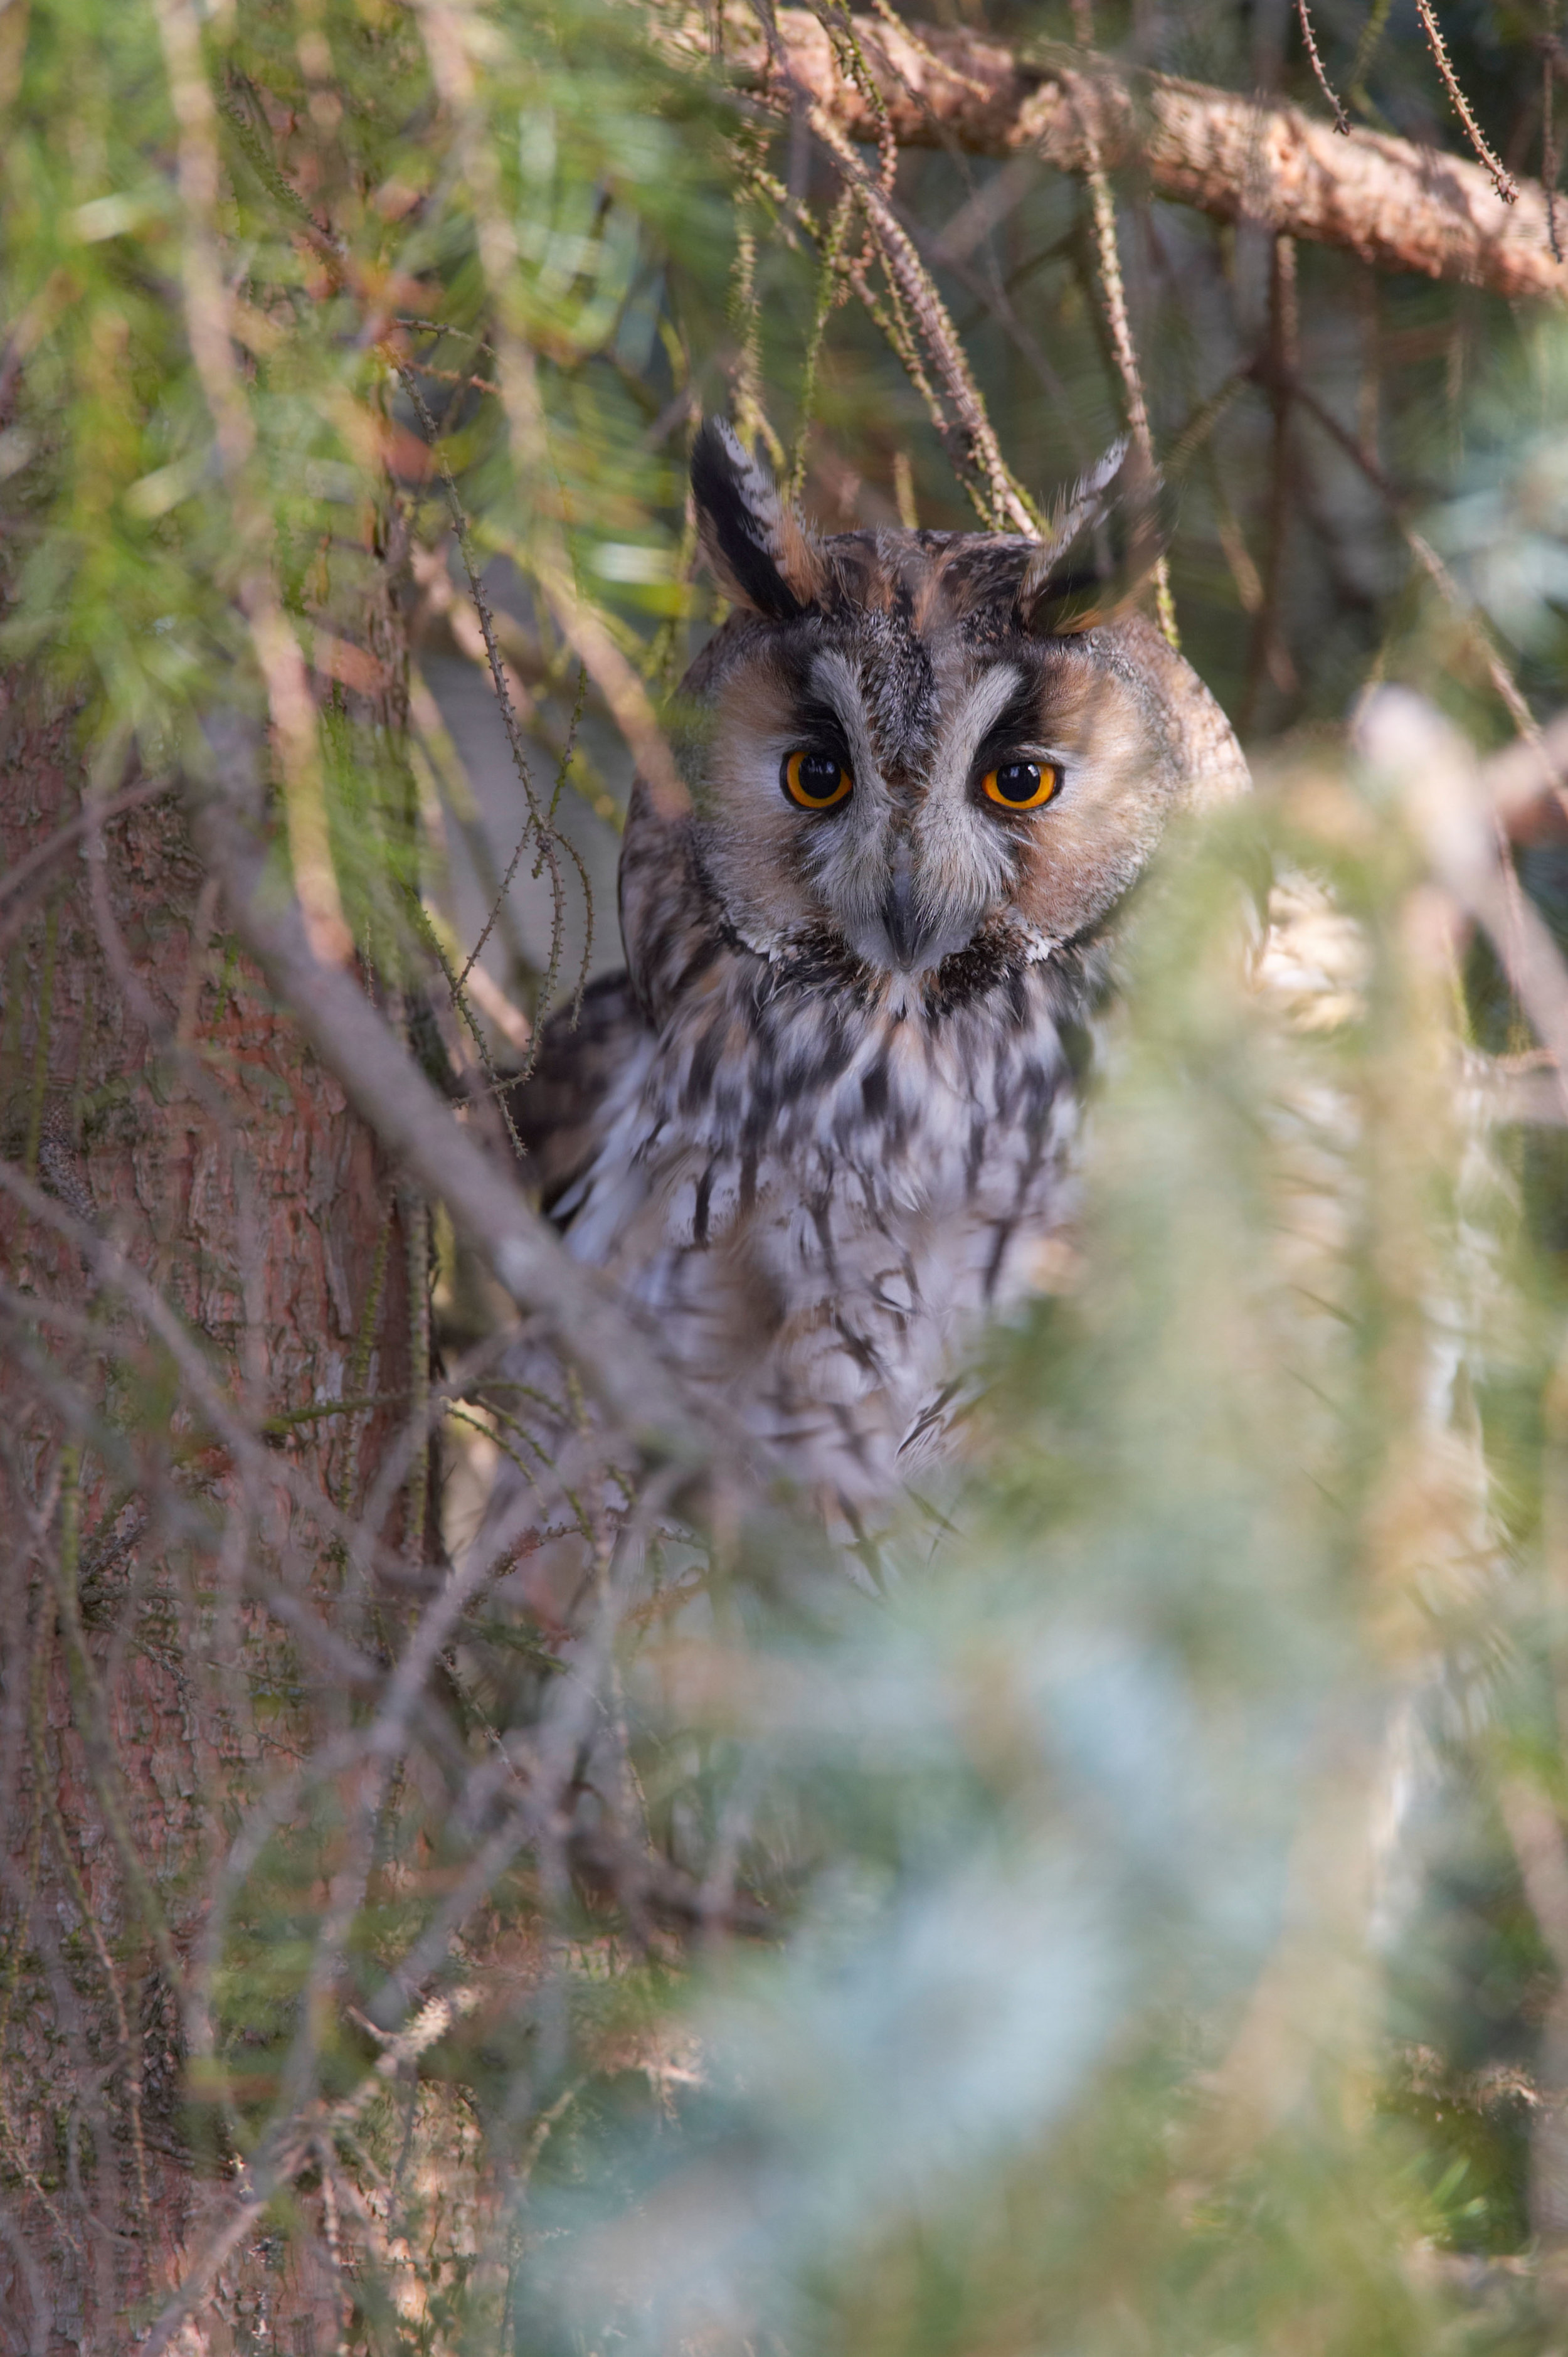 Long-eared Owl at roost site